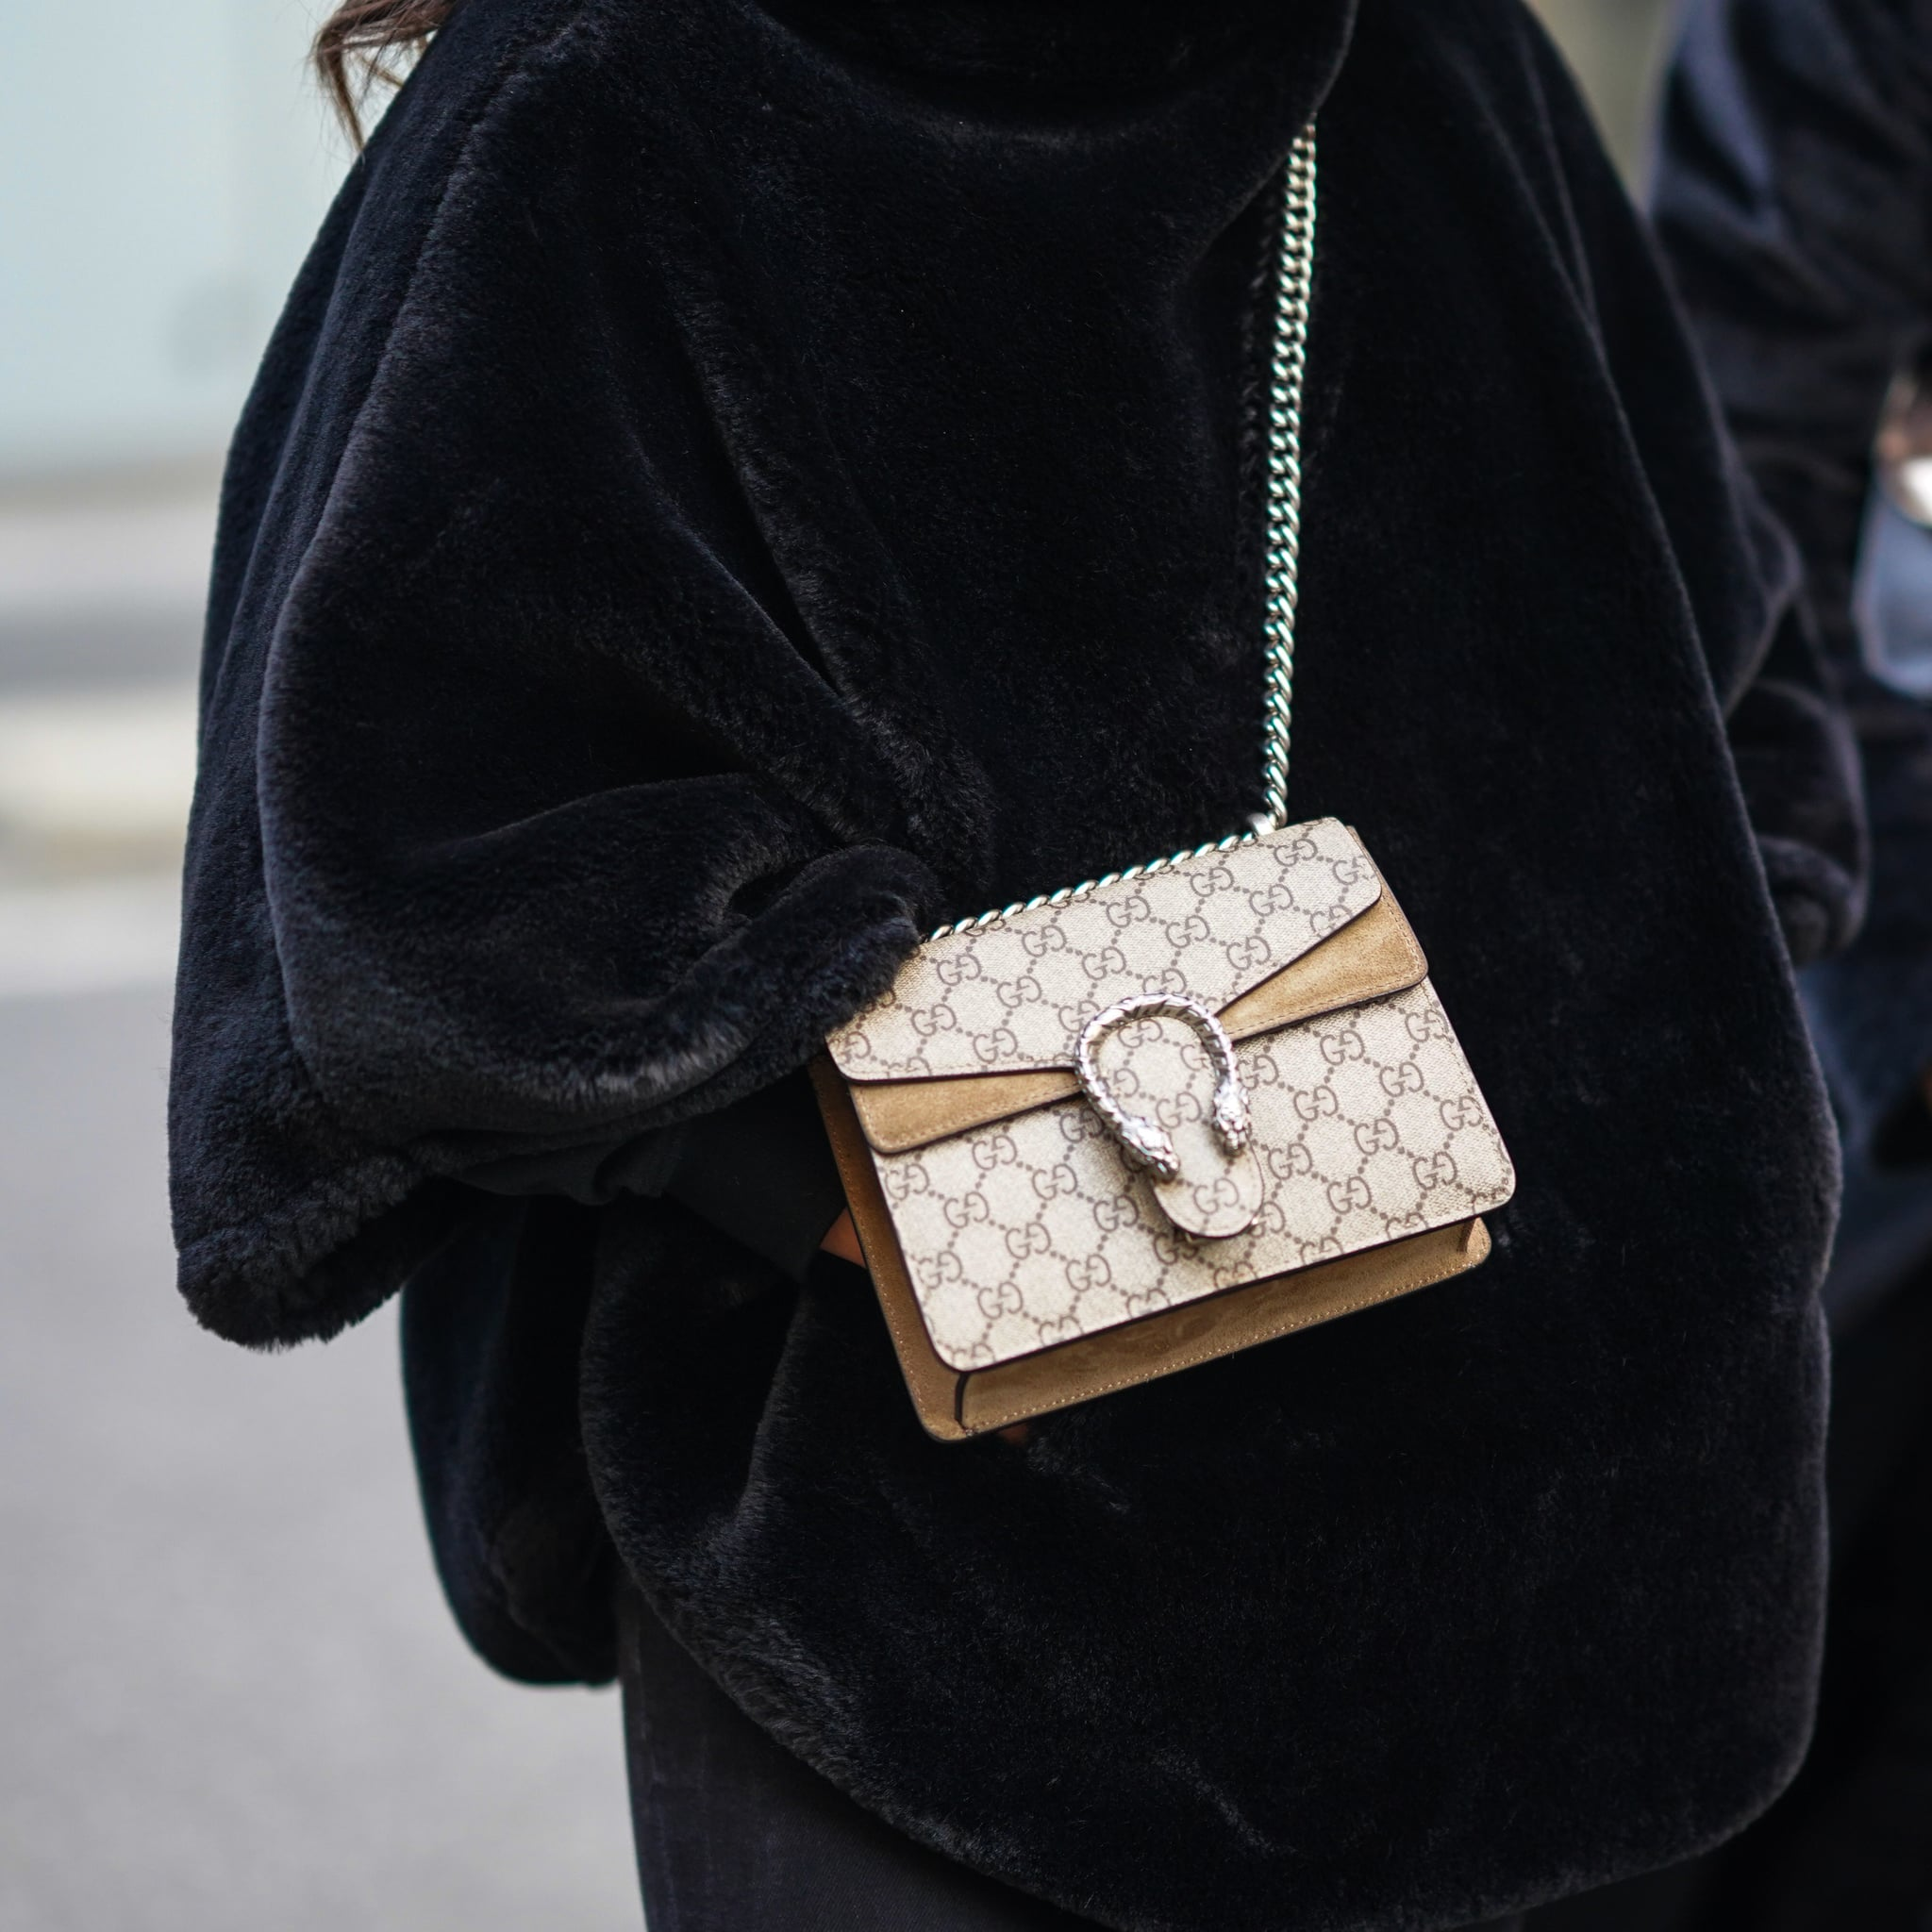 The Best Designer Bags To Invest In For 2020 Popsugar Fashion